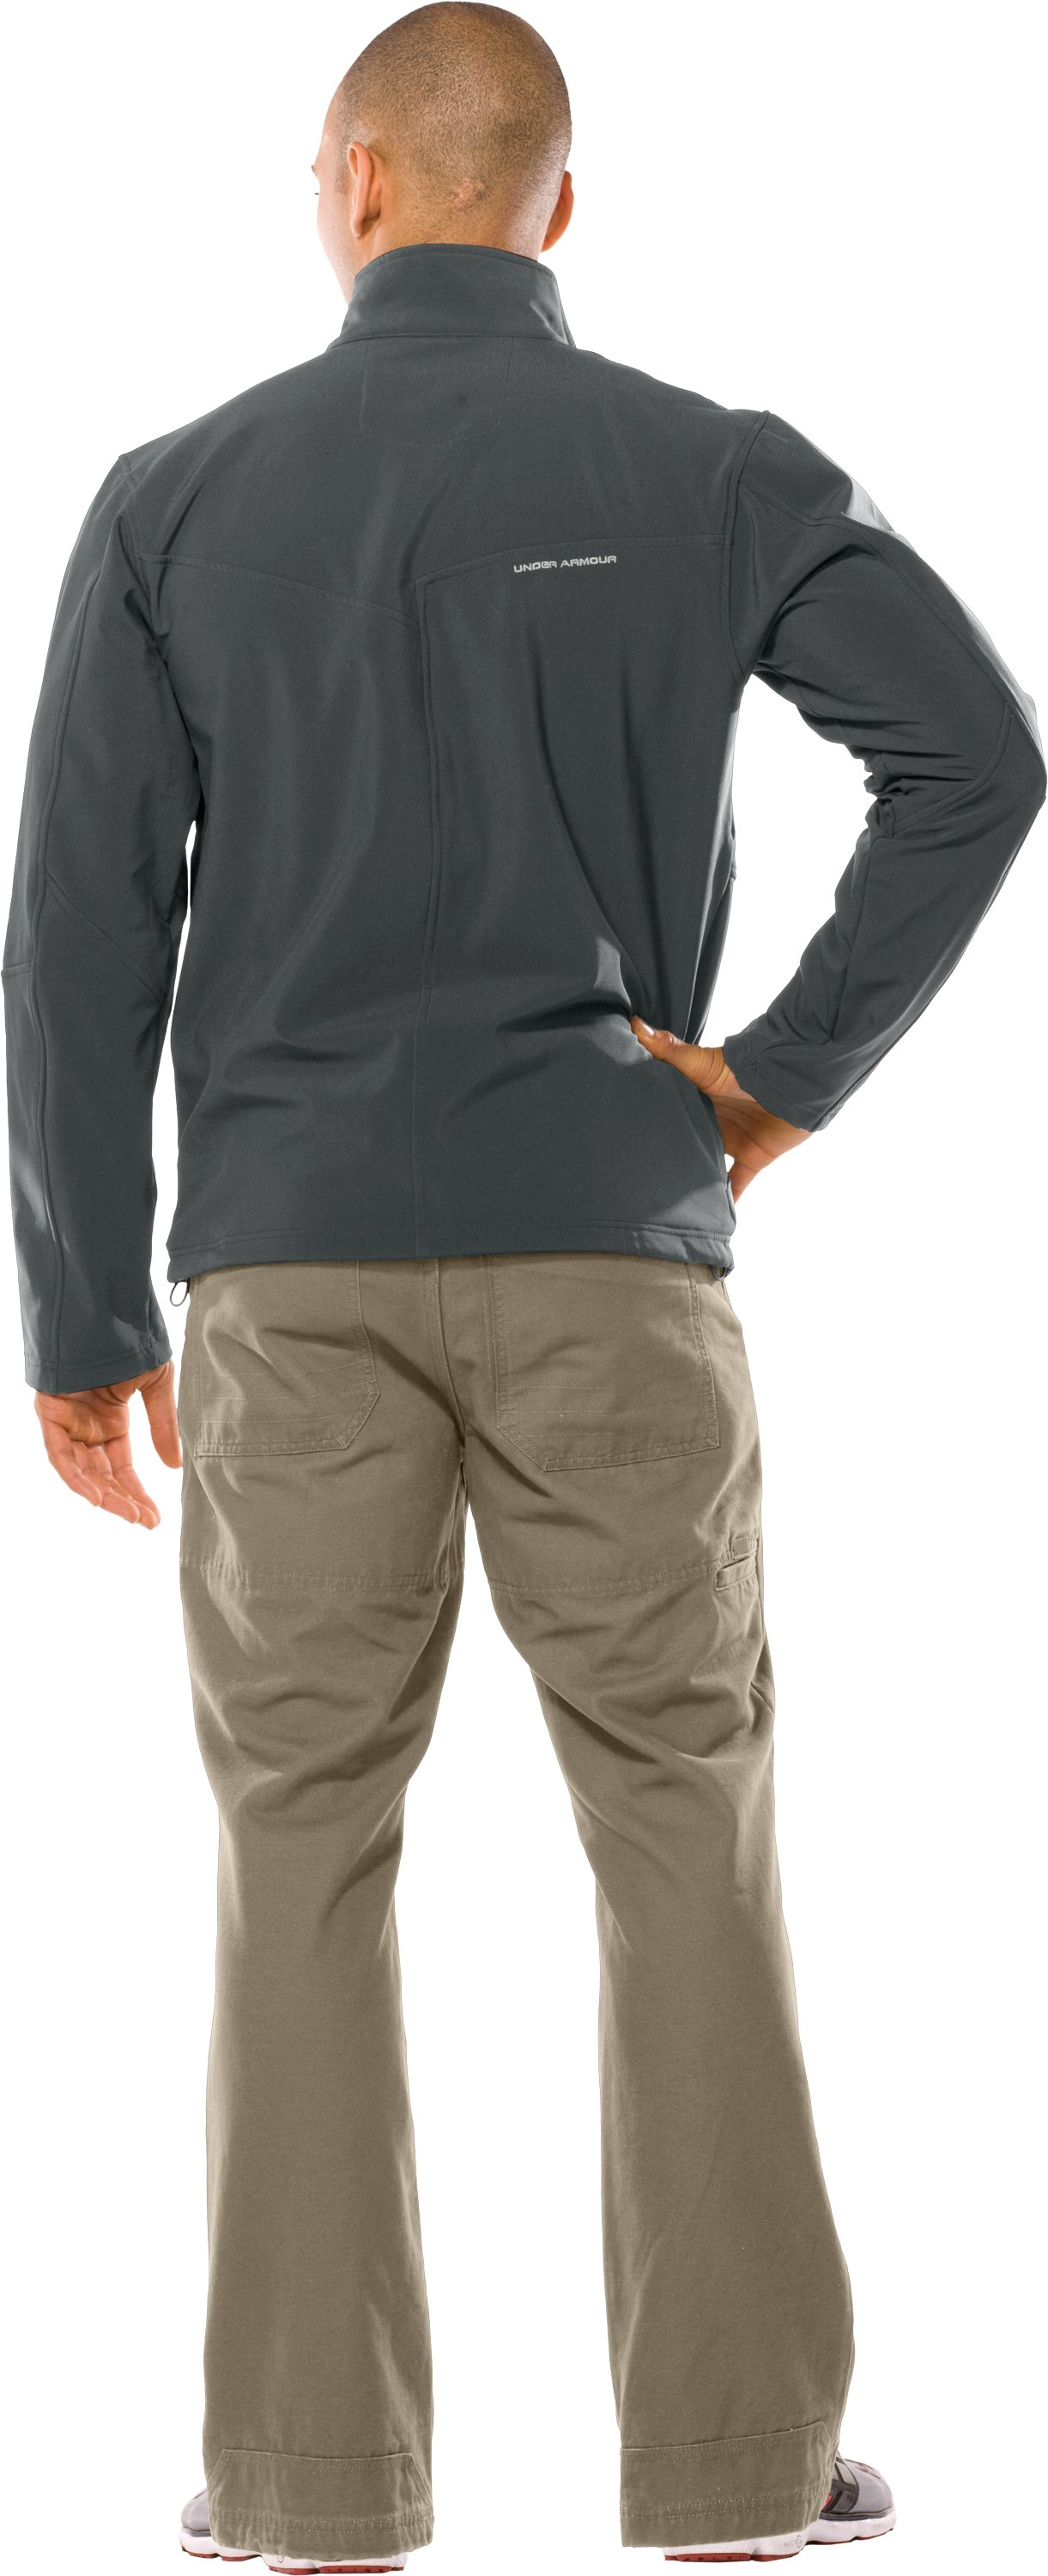 Men's Skyscraper Softshell Jacket, Battleship, Back